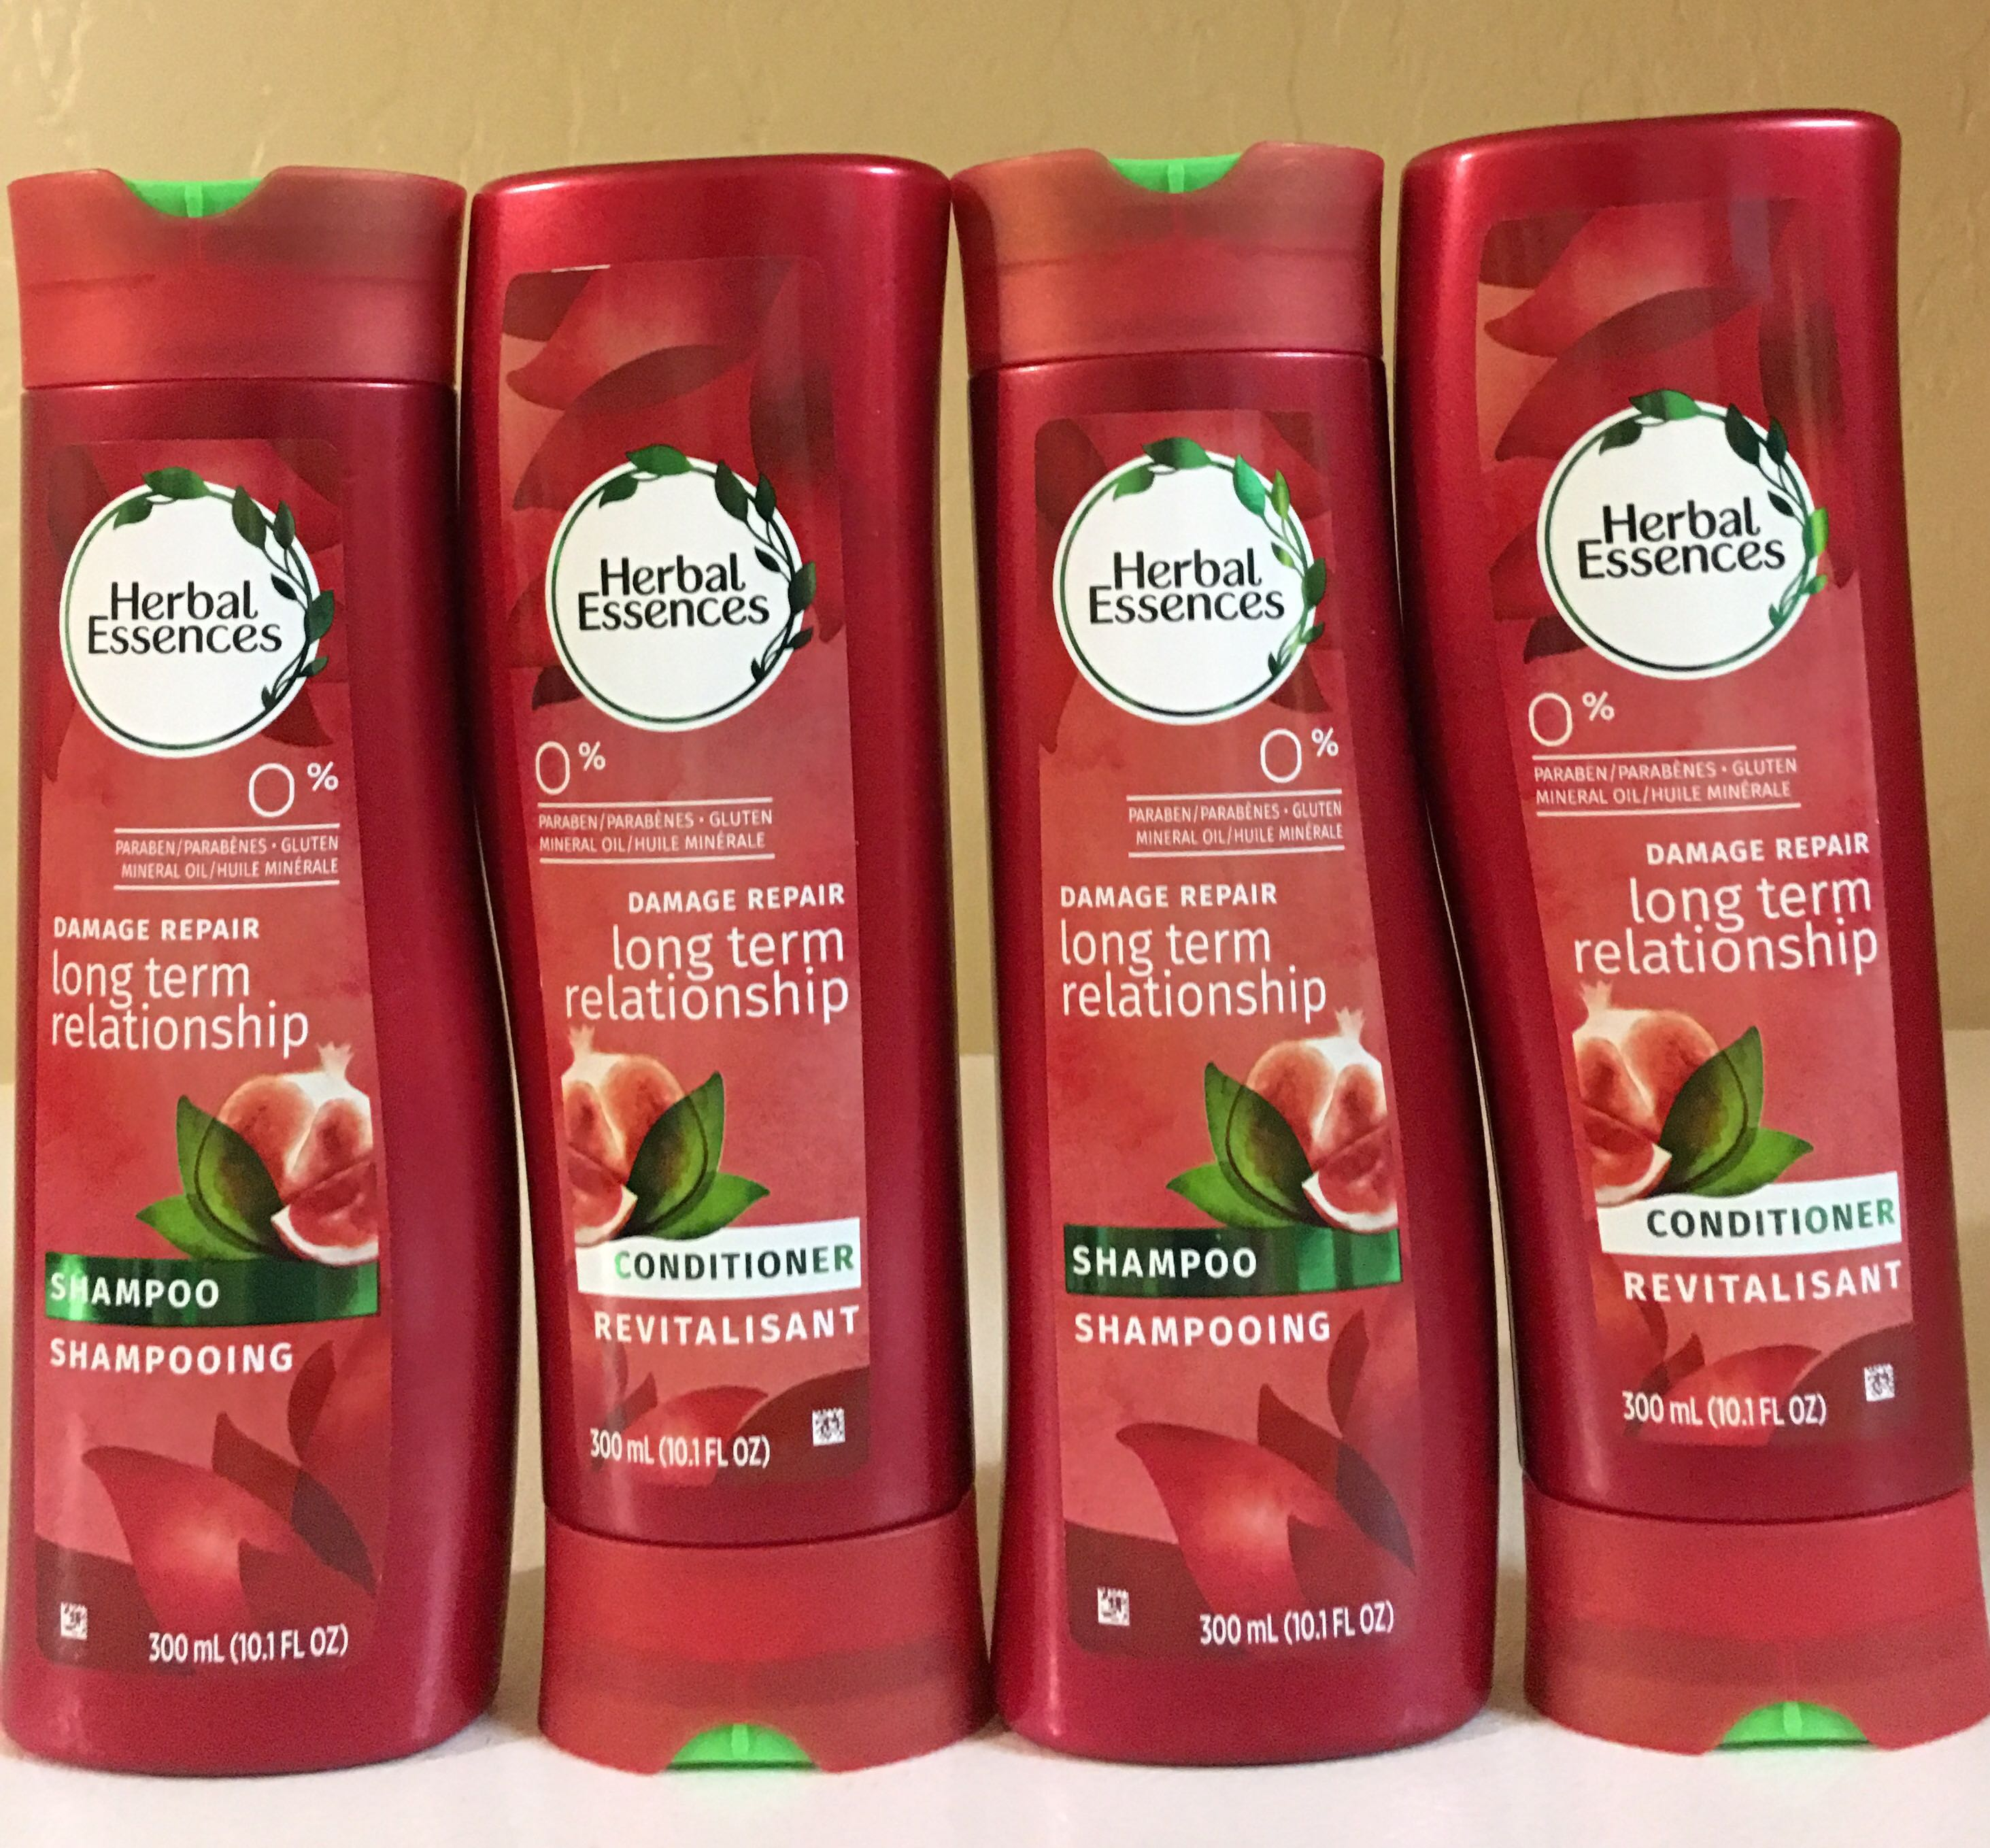 Herbal Essences $6 for all! New!